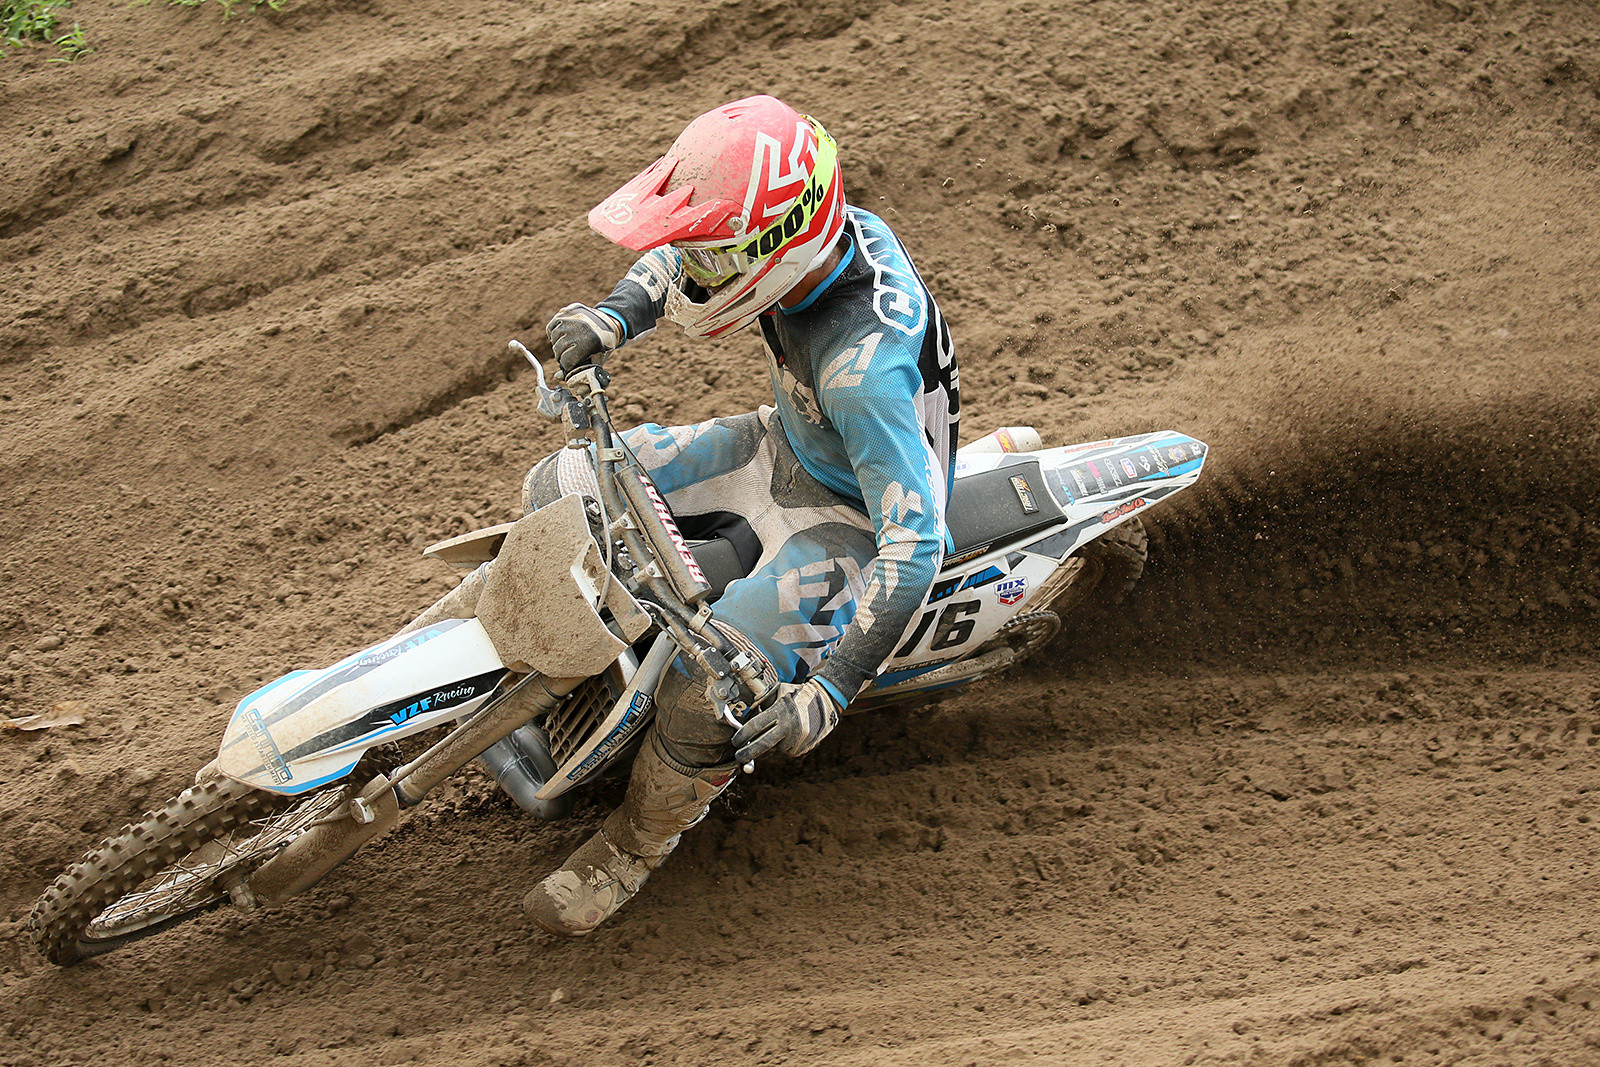 Chris Canning put in two top-20 finishes in the 450 class...on his KTM 250 two-stroke.